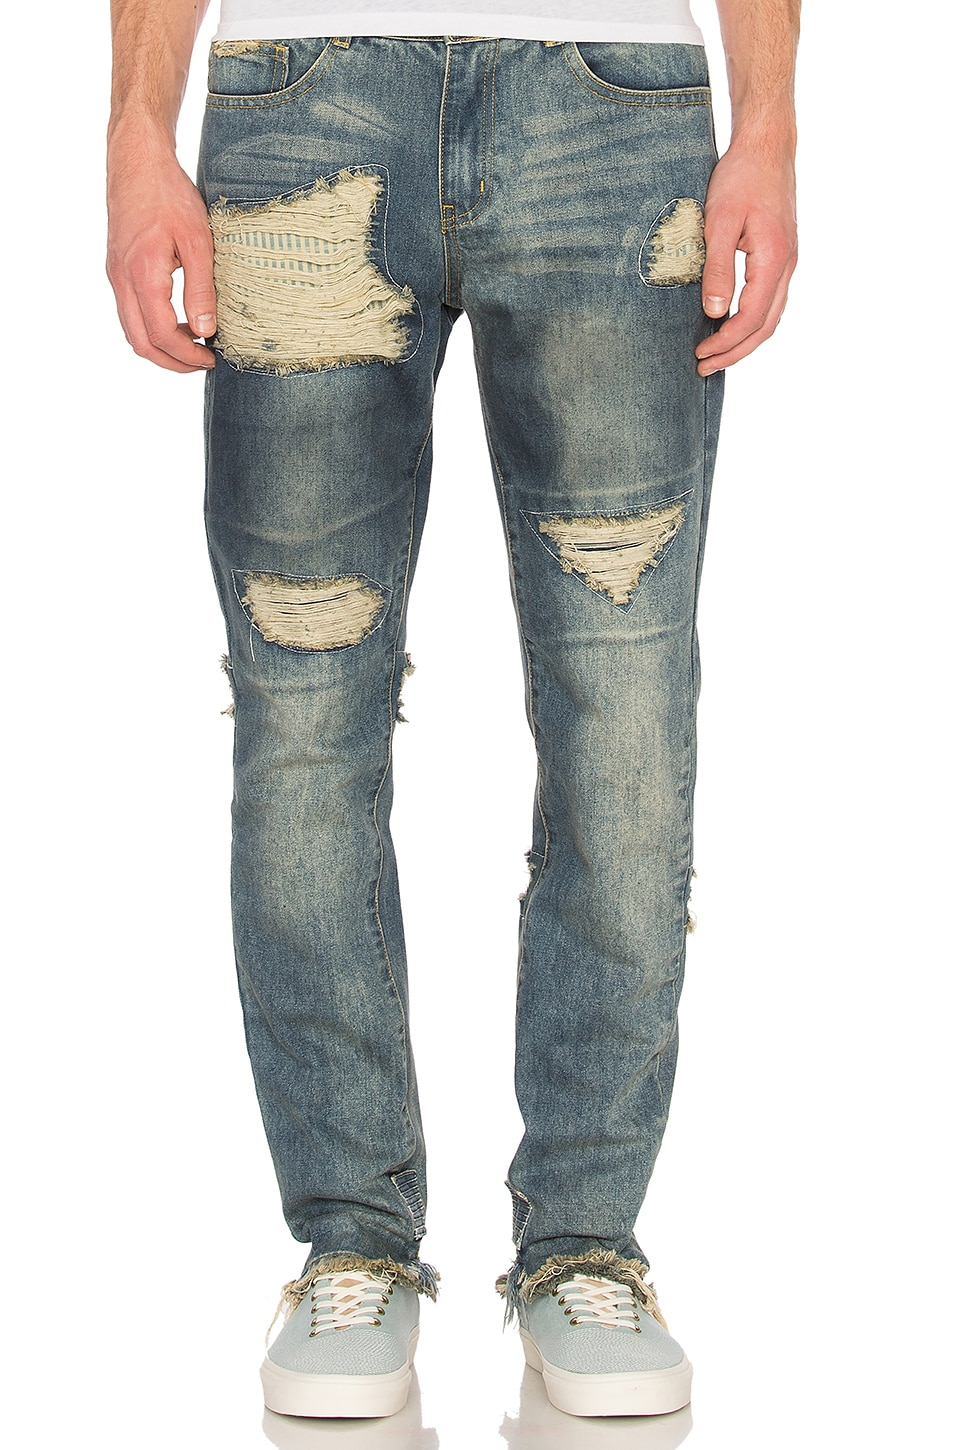 Distressed Stonewashed Jean by C2H4